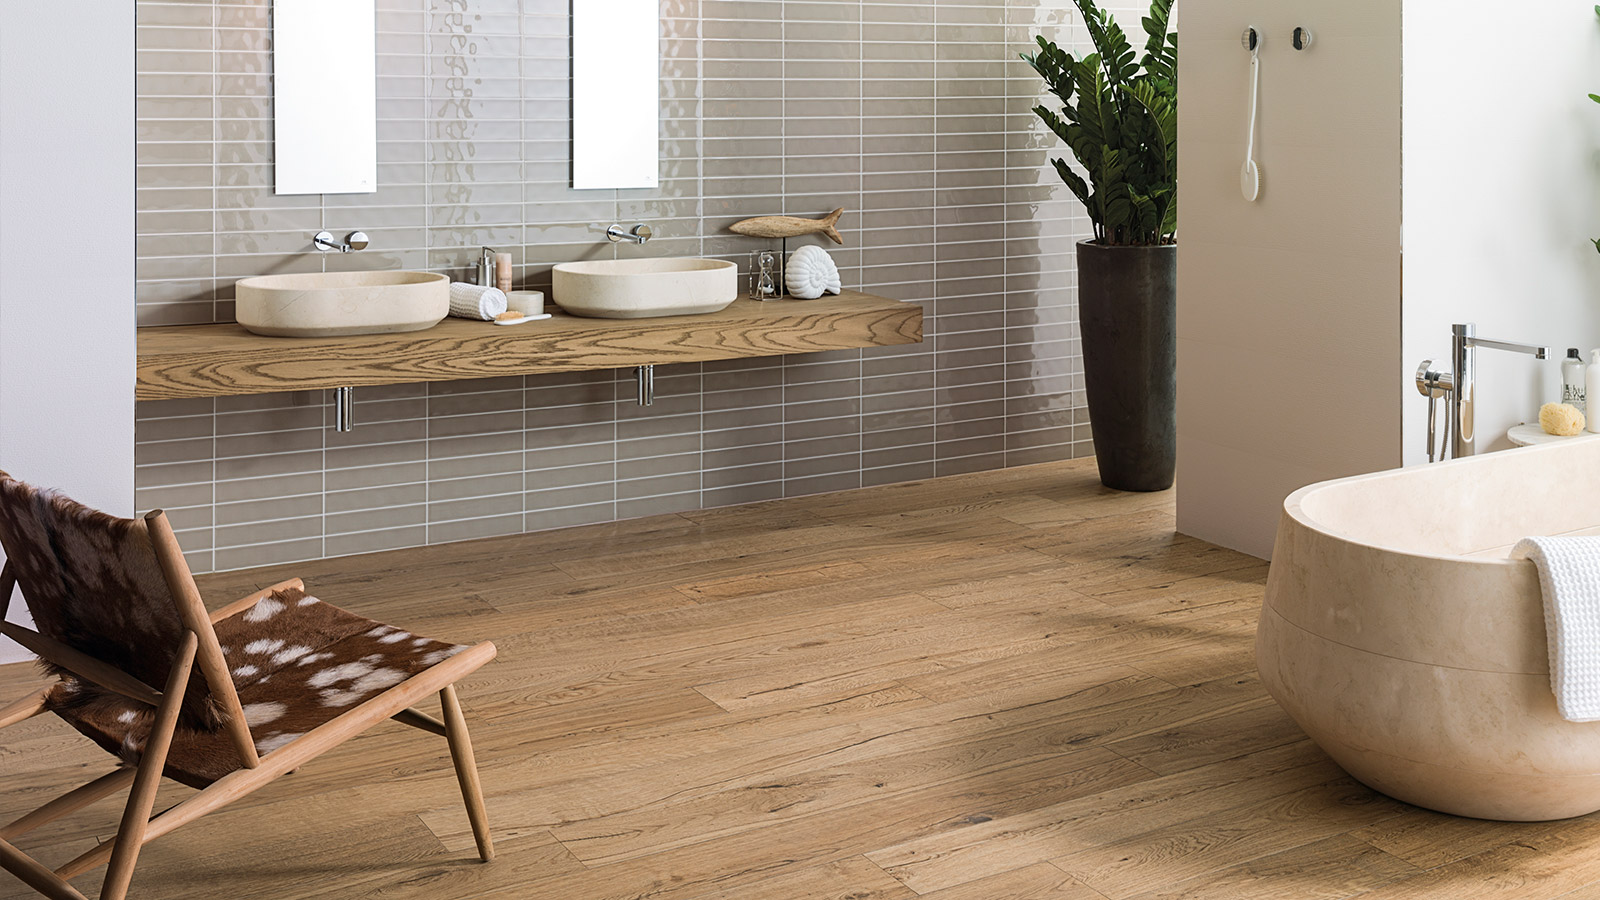 GET THE LOOK: We combine natural stone and wood in the bathroom with the Delaware ceramic parquet by PAR-KER